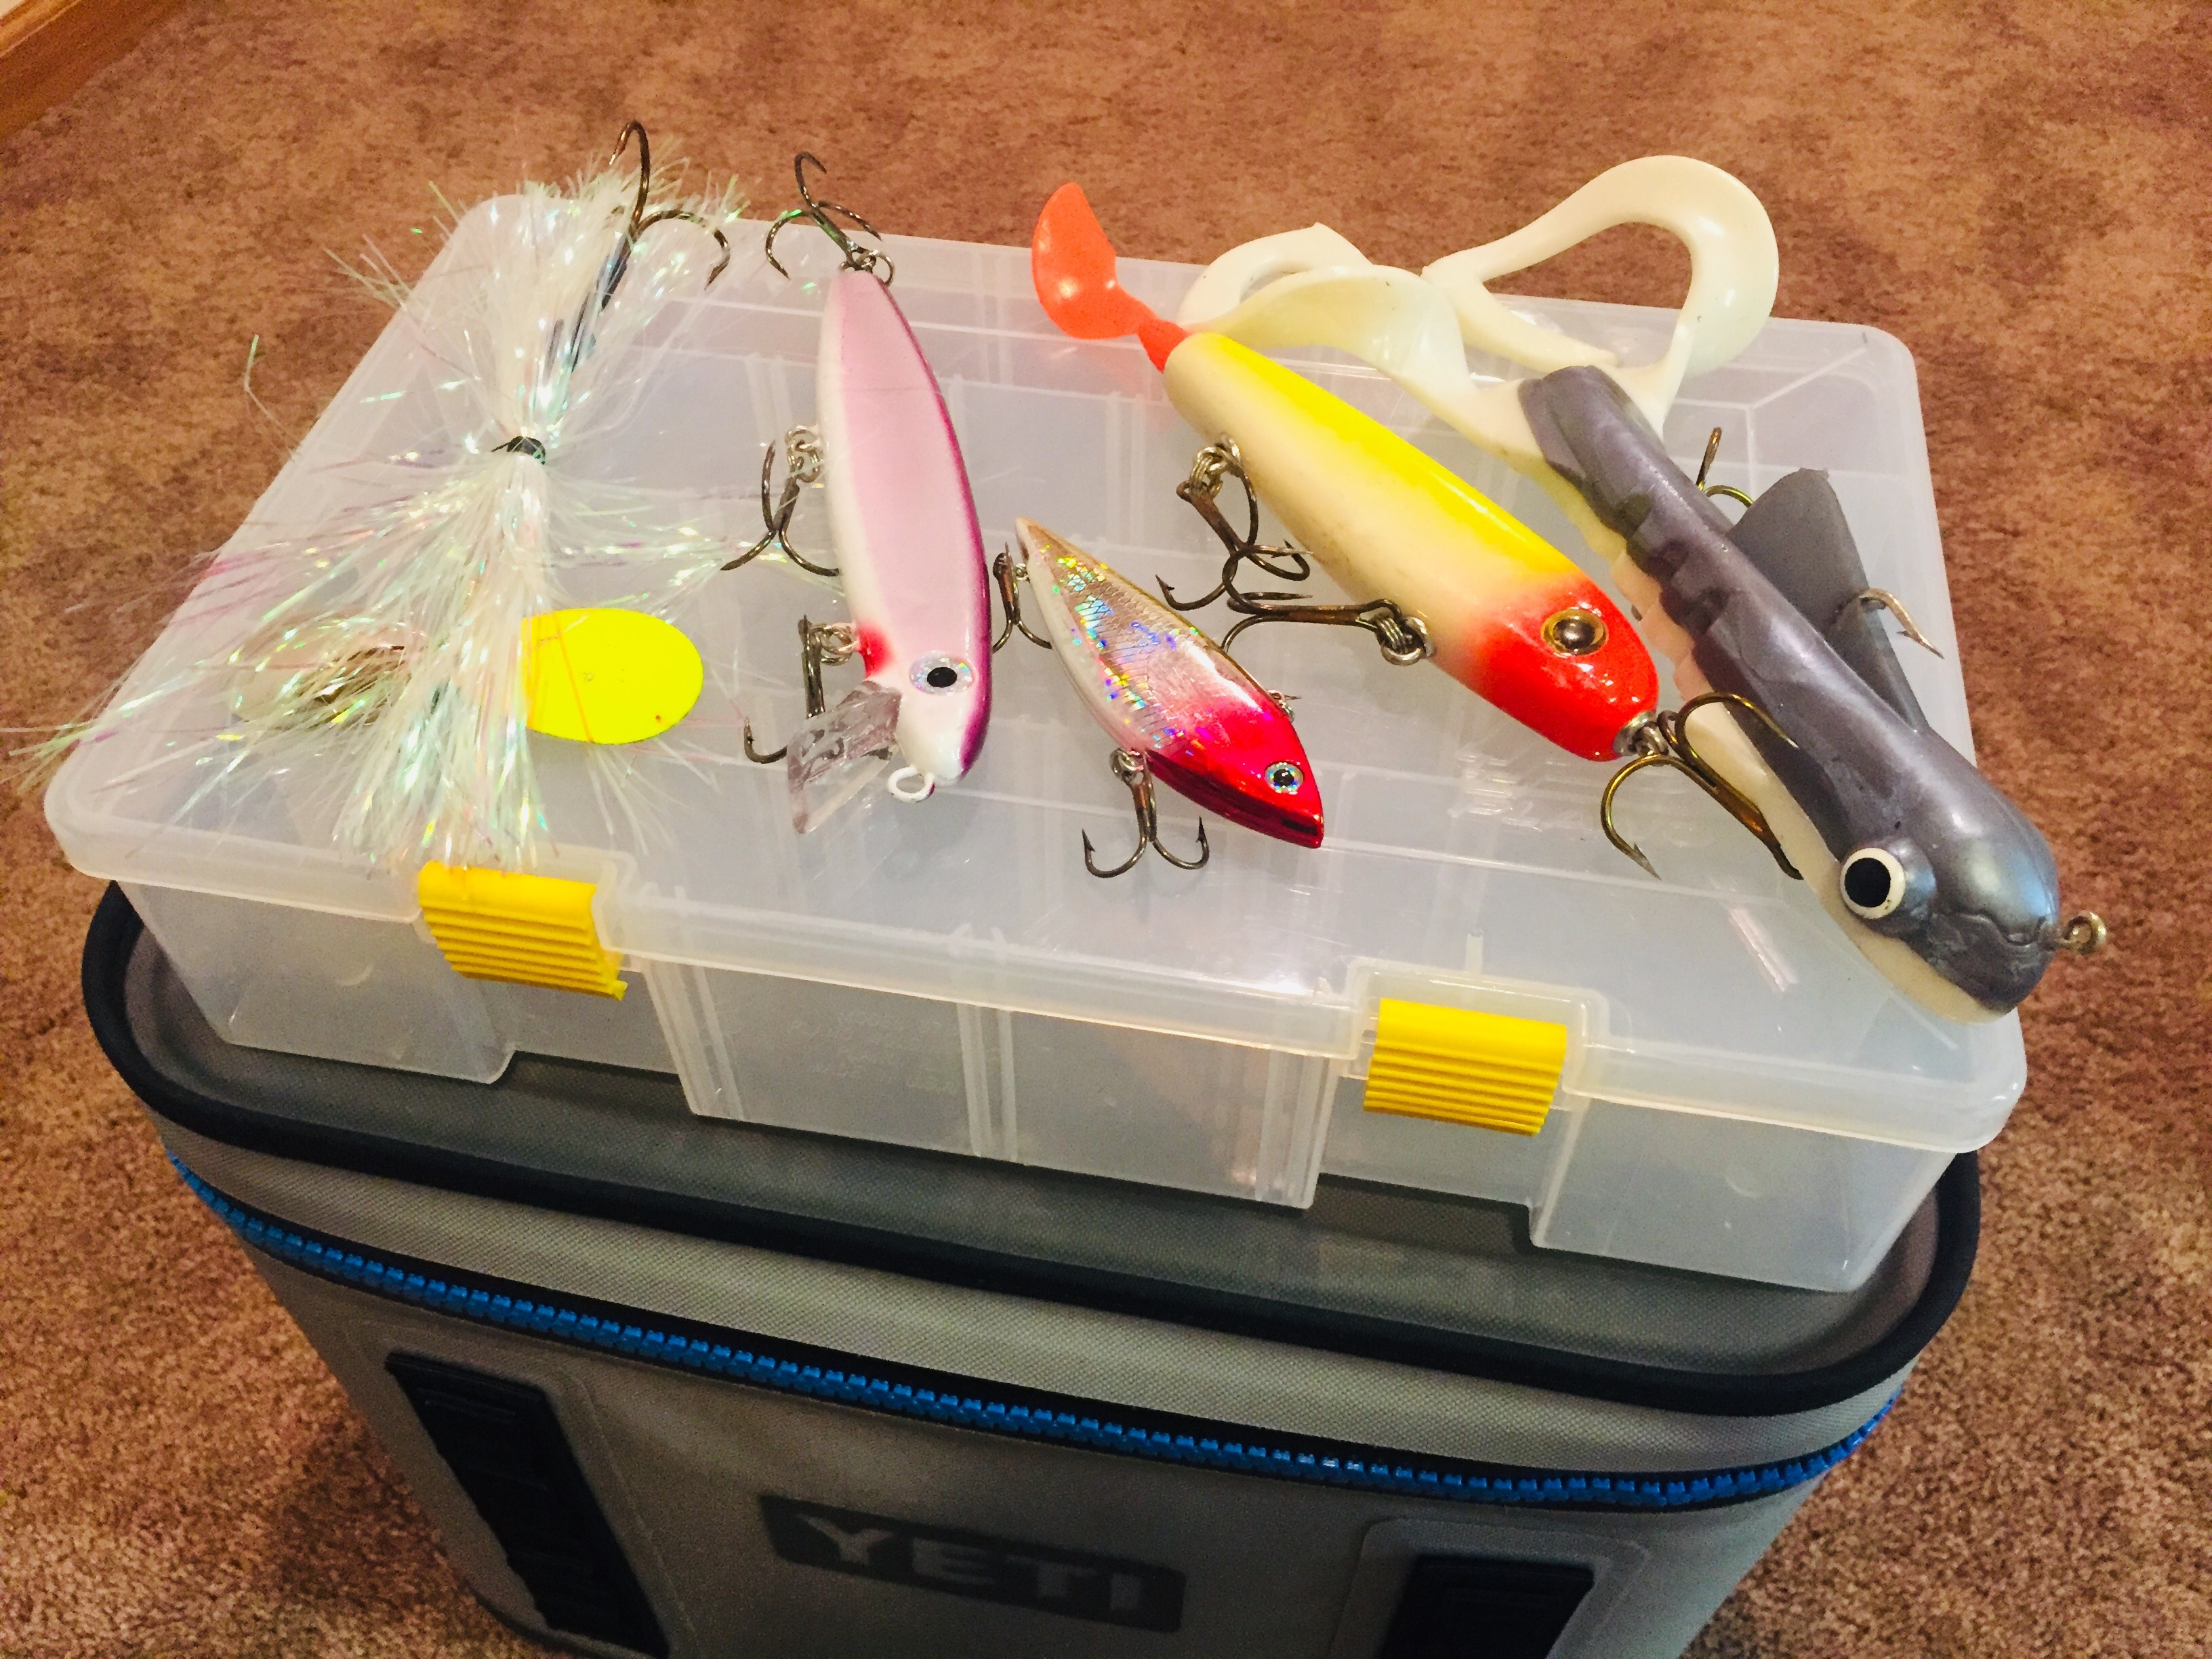 Organizing Your Tackle